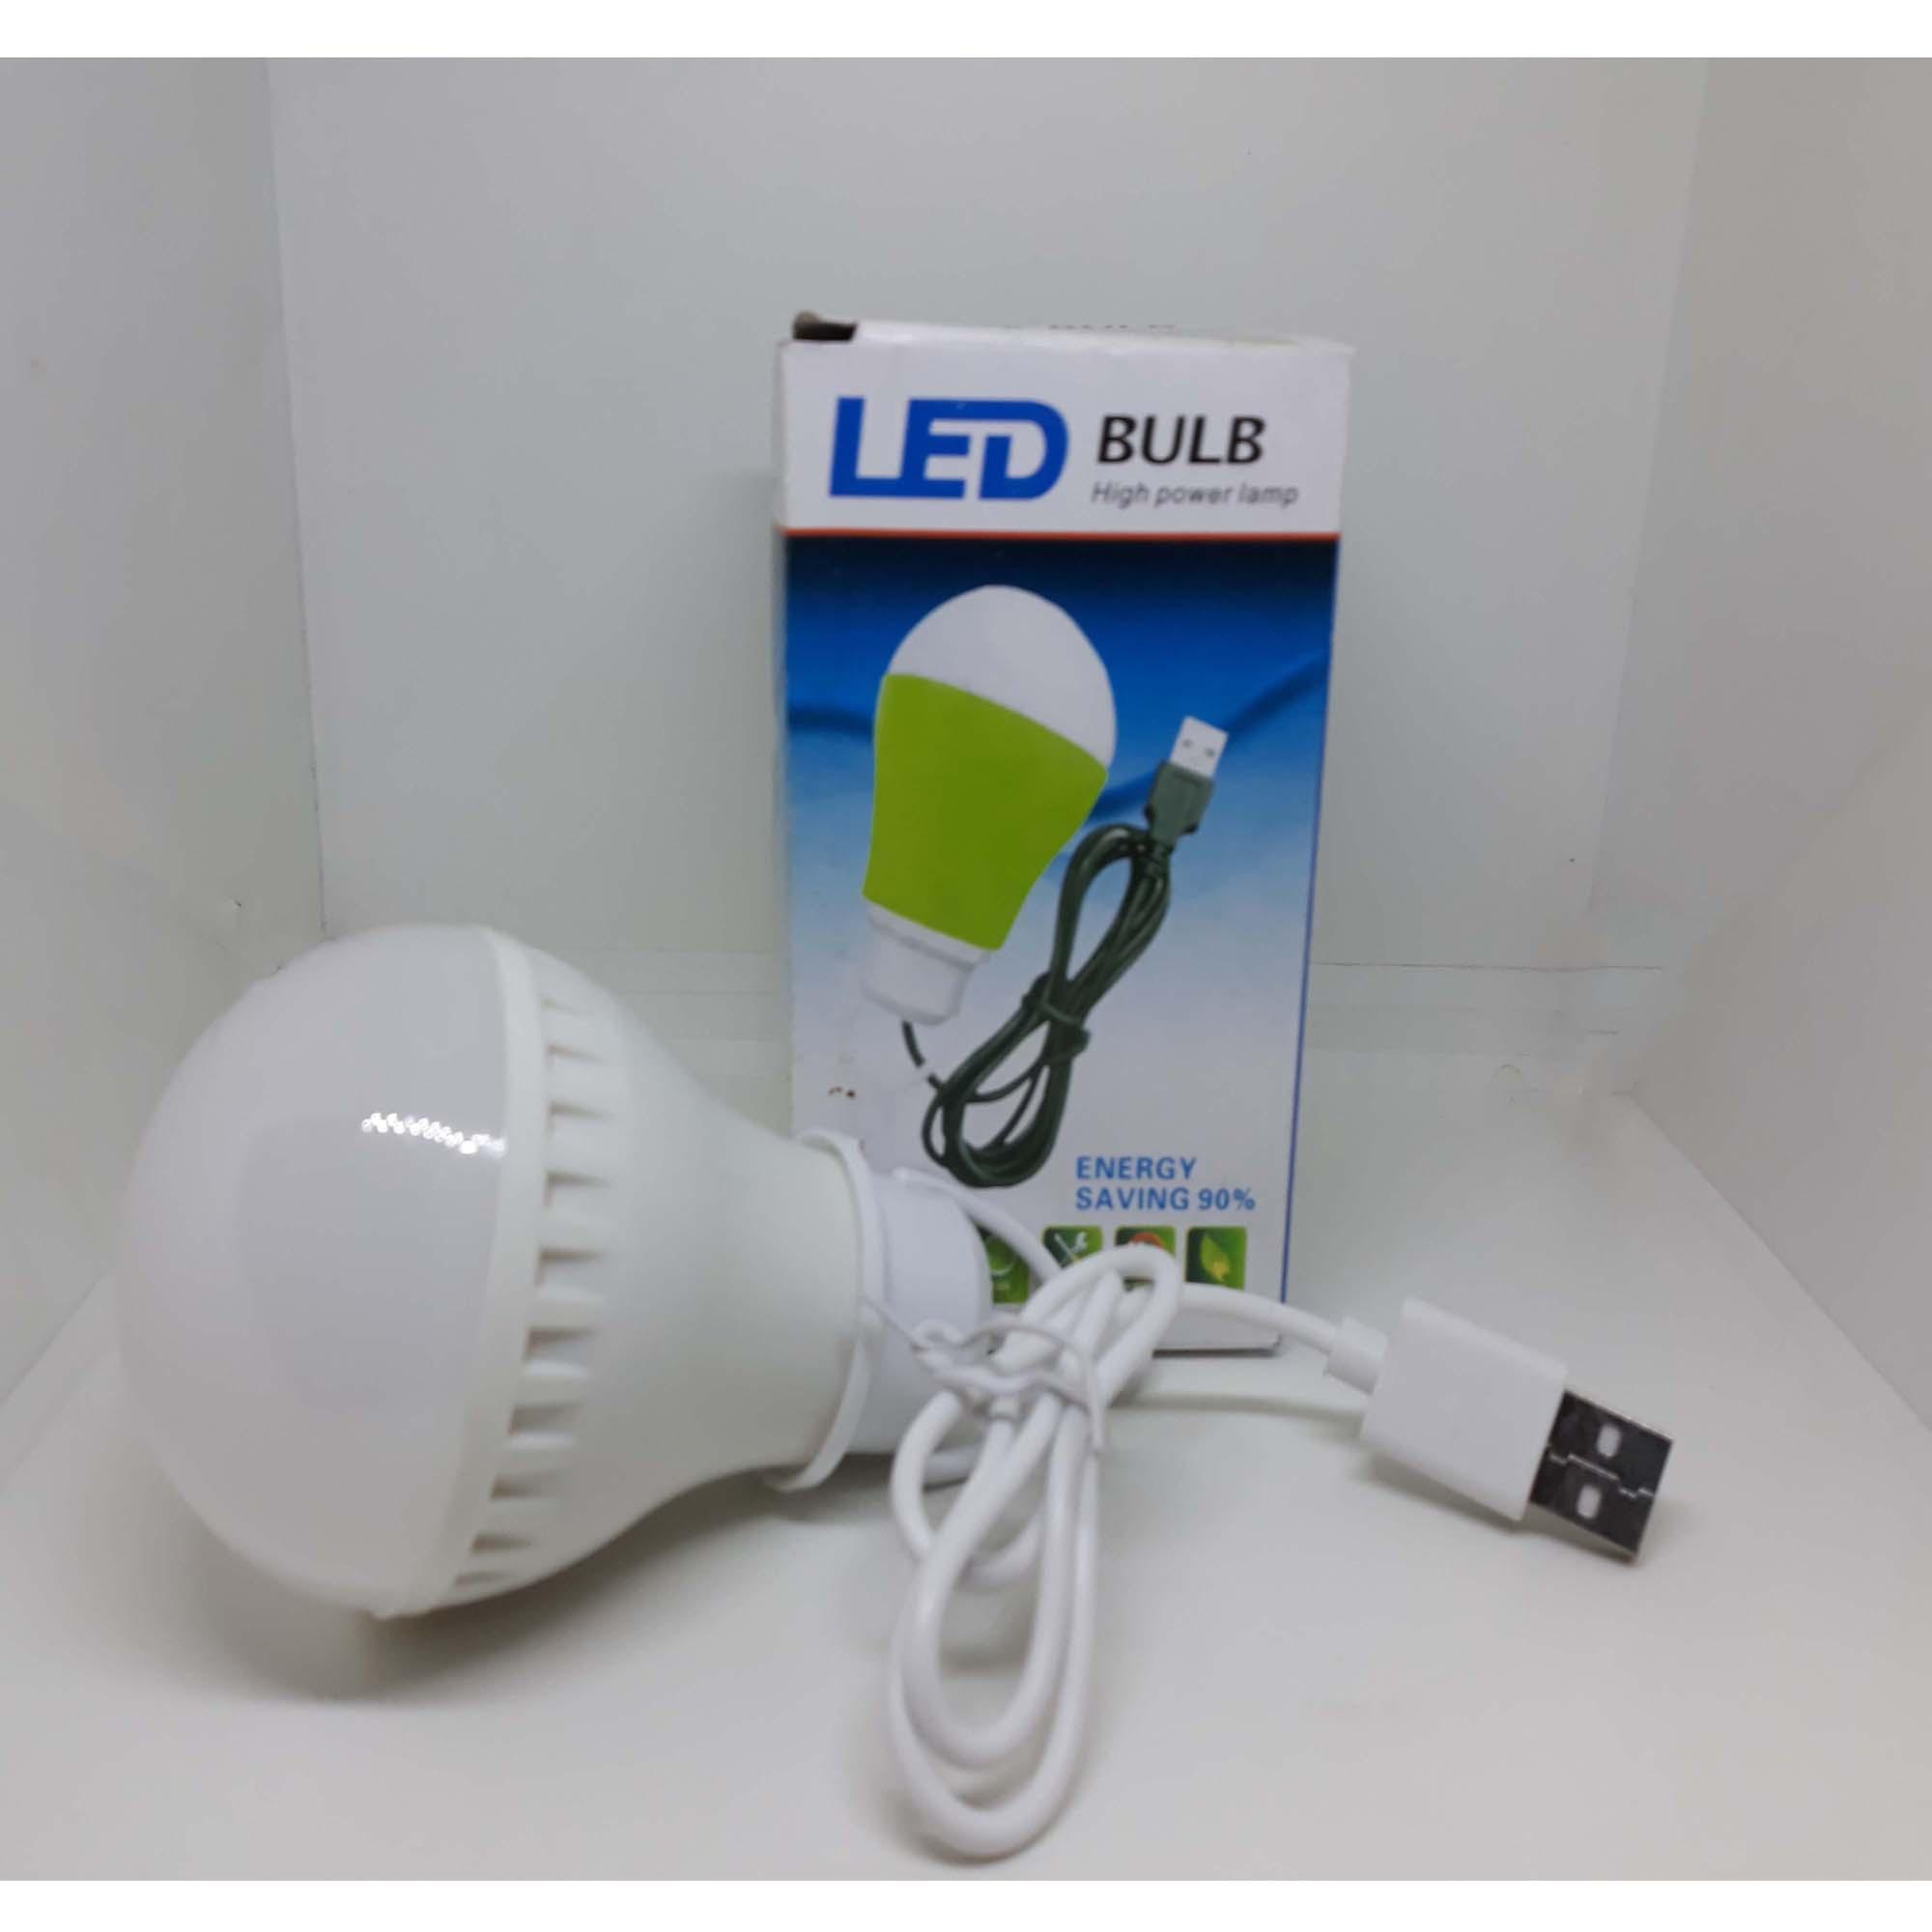 Led Bohlam Lampu Usb 5 Watt 1 Pcs Warna Random Daftar Harga Buy Get Free Emergency 7 Kabel Meter